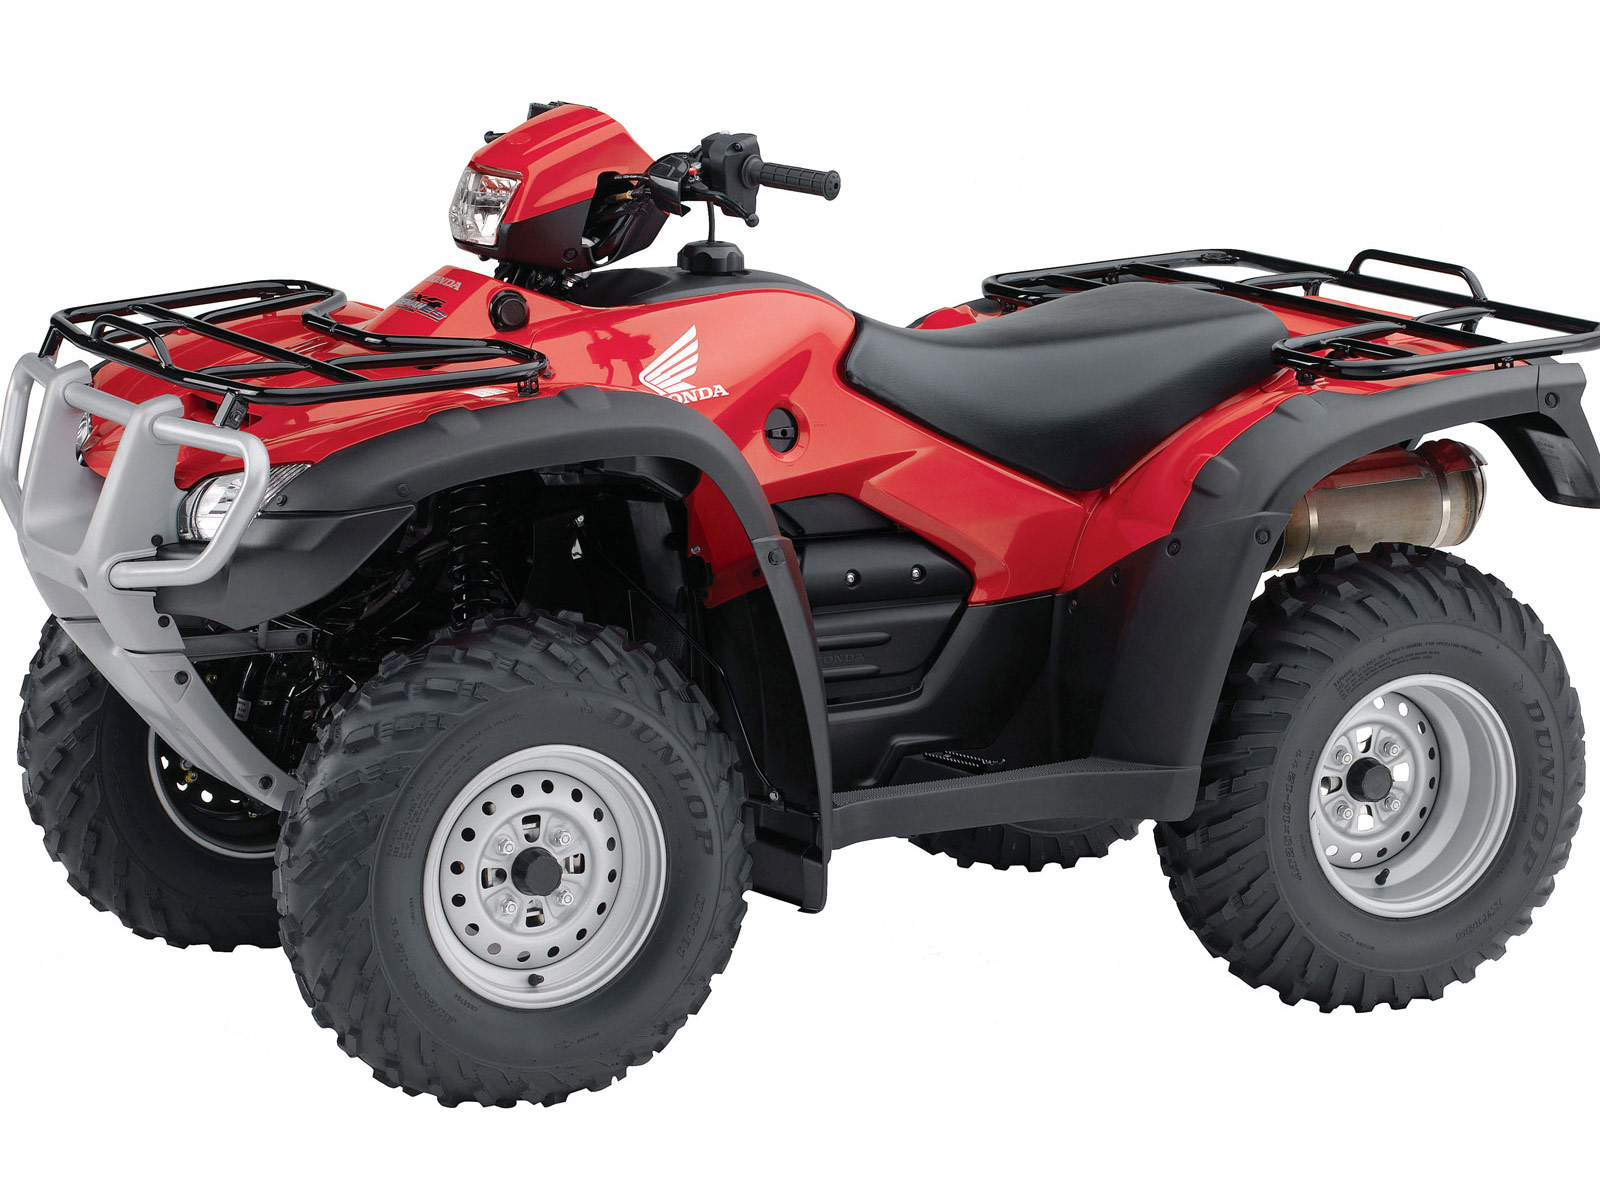 http://1.bp.blogspot.com/-v_7QCZANhv8/TtrgjGj0uPI/AAAAAAAAKDE/oujDIAjtTz8/s1600/2011-Honda-FourTrax-Foreman-4X4-ES-with-Power-Steering-TRX500FPE_atv-wallpapers_2.jpg